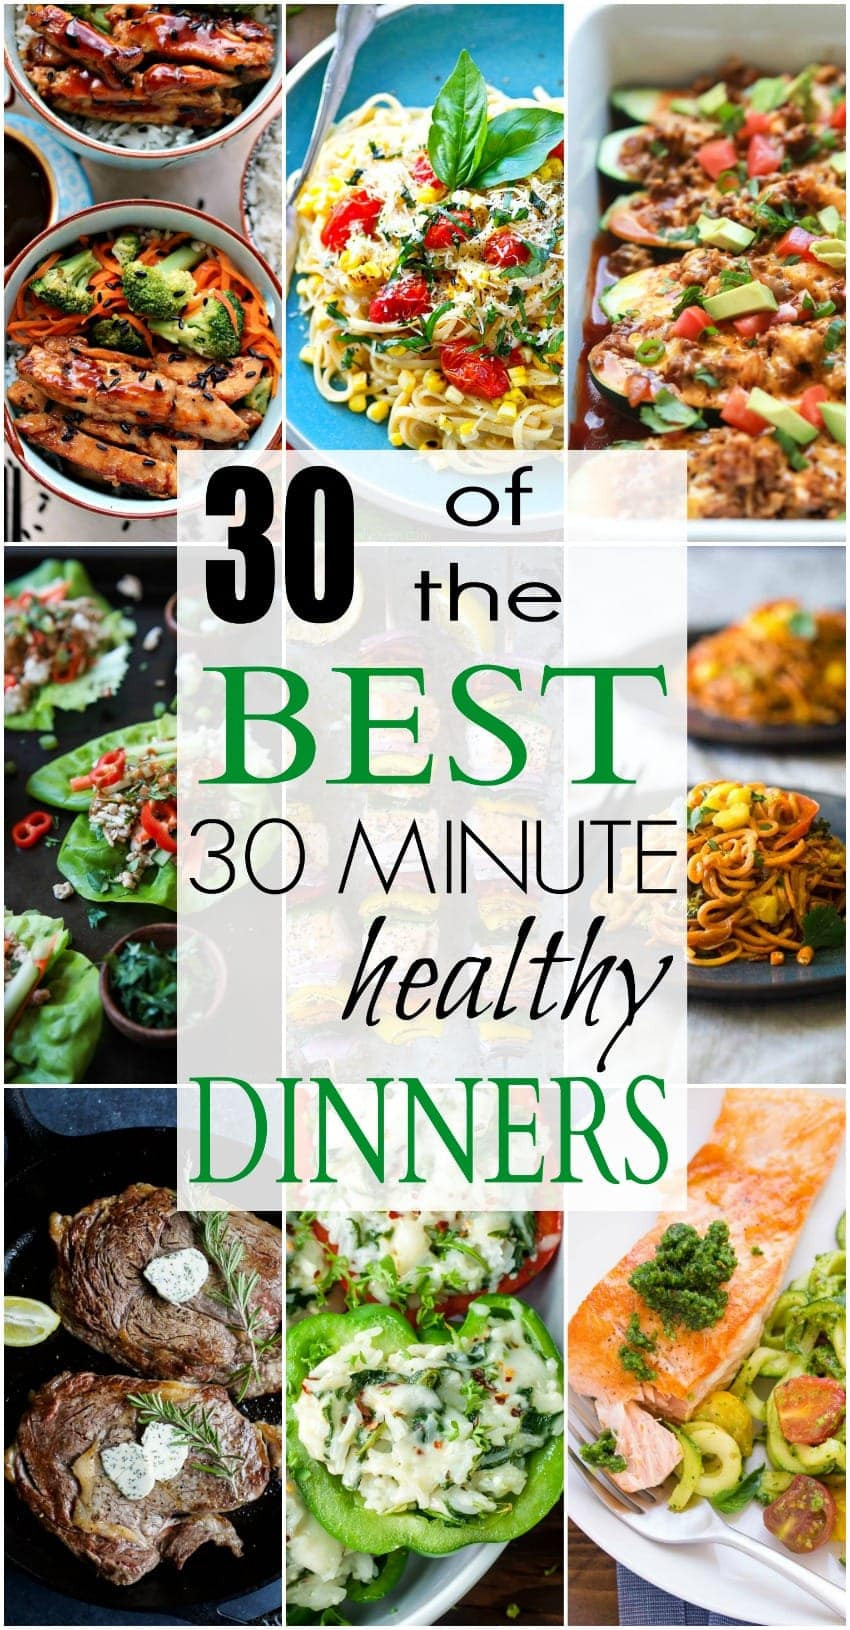 Healthy 30 Minute Dinners  30 of The BEST Healthy 30 Minute Dinners